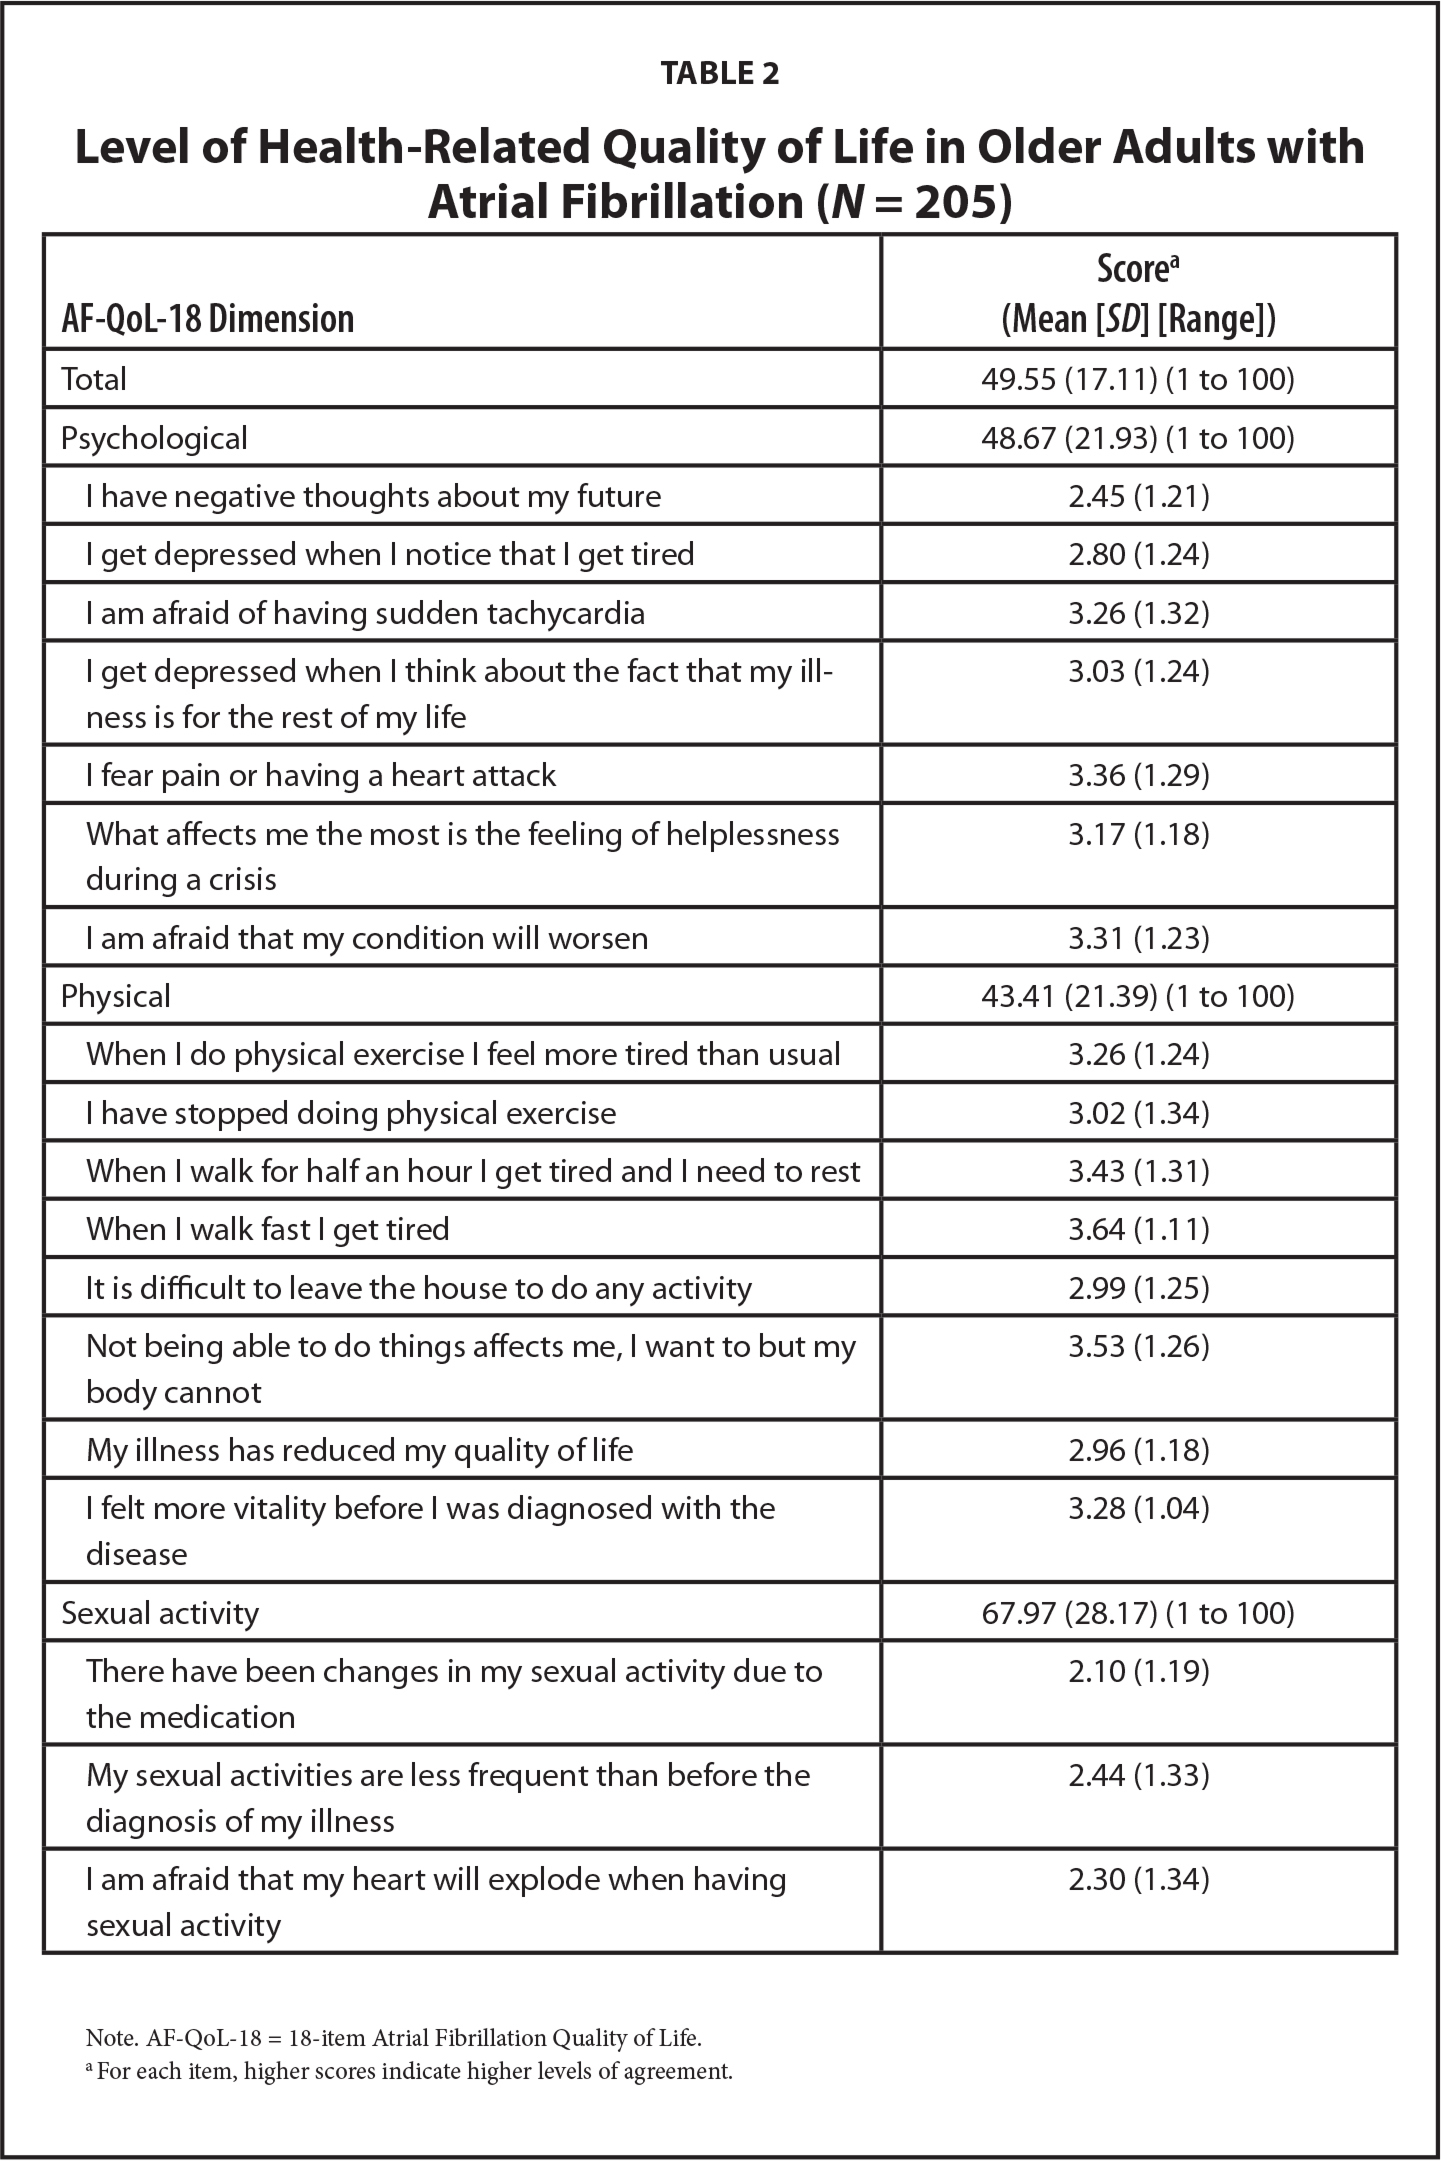 Level of Health-Related Quality of Life in Older Adults with Atrial Fibrillation (N = 205)